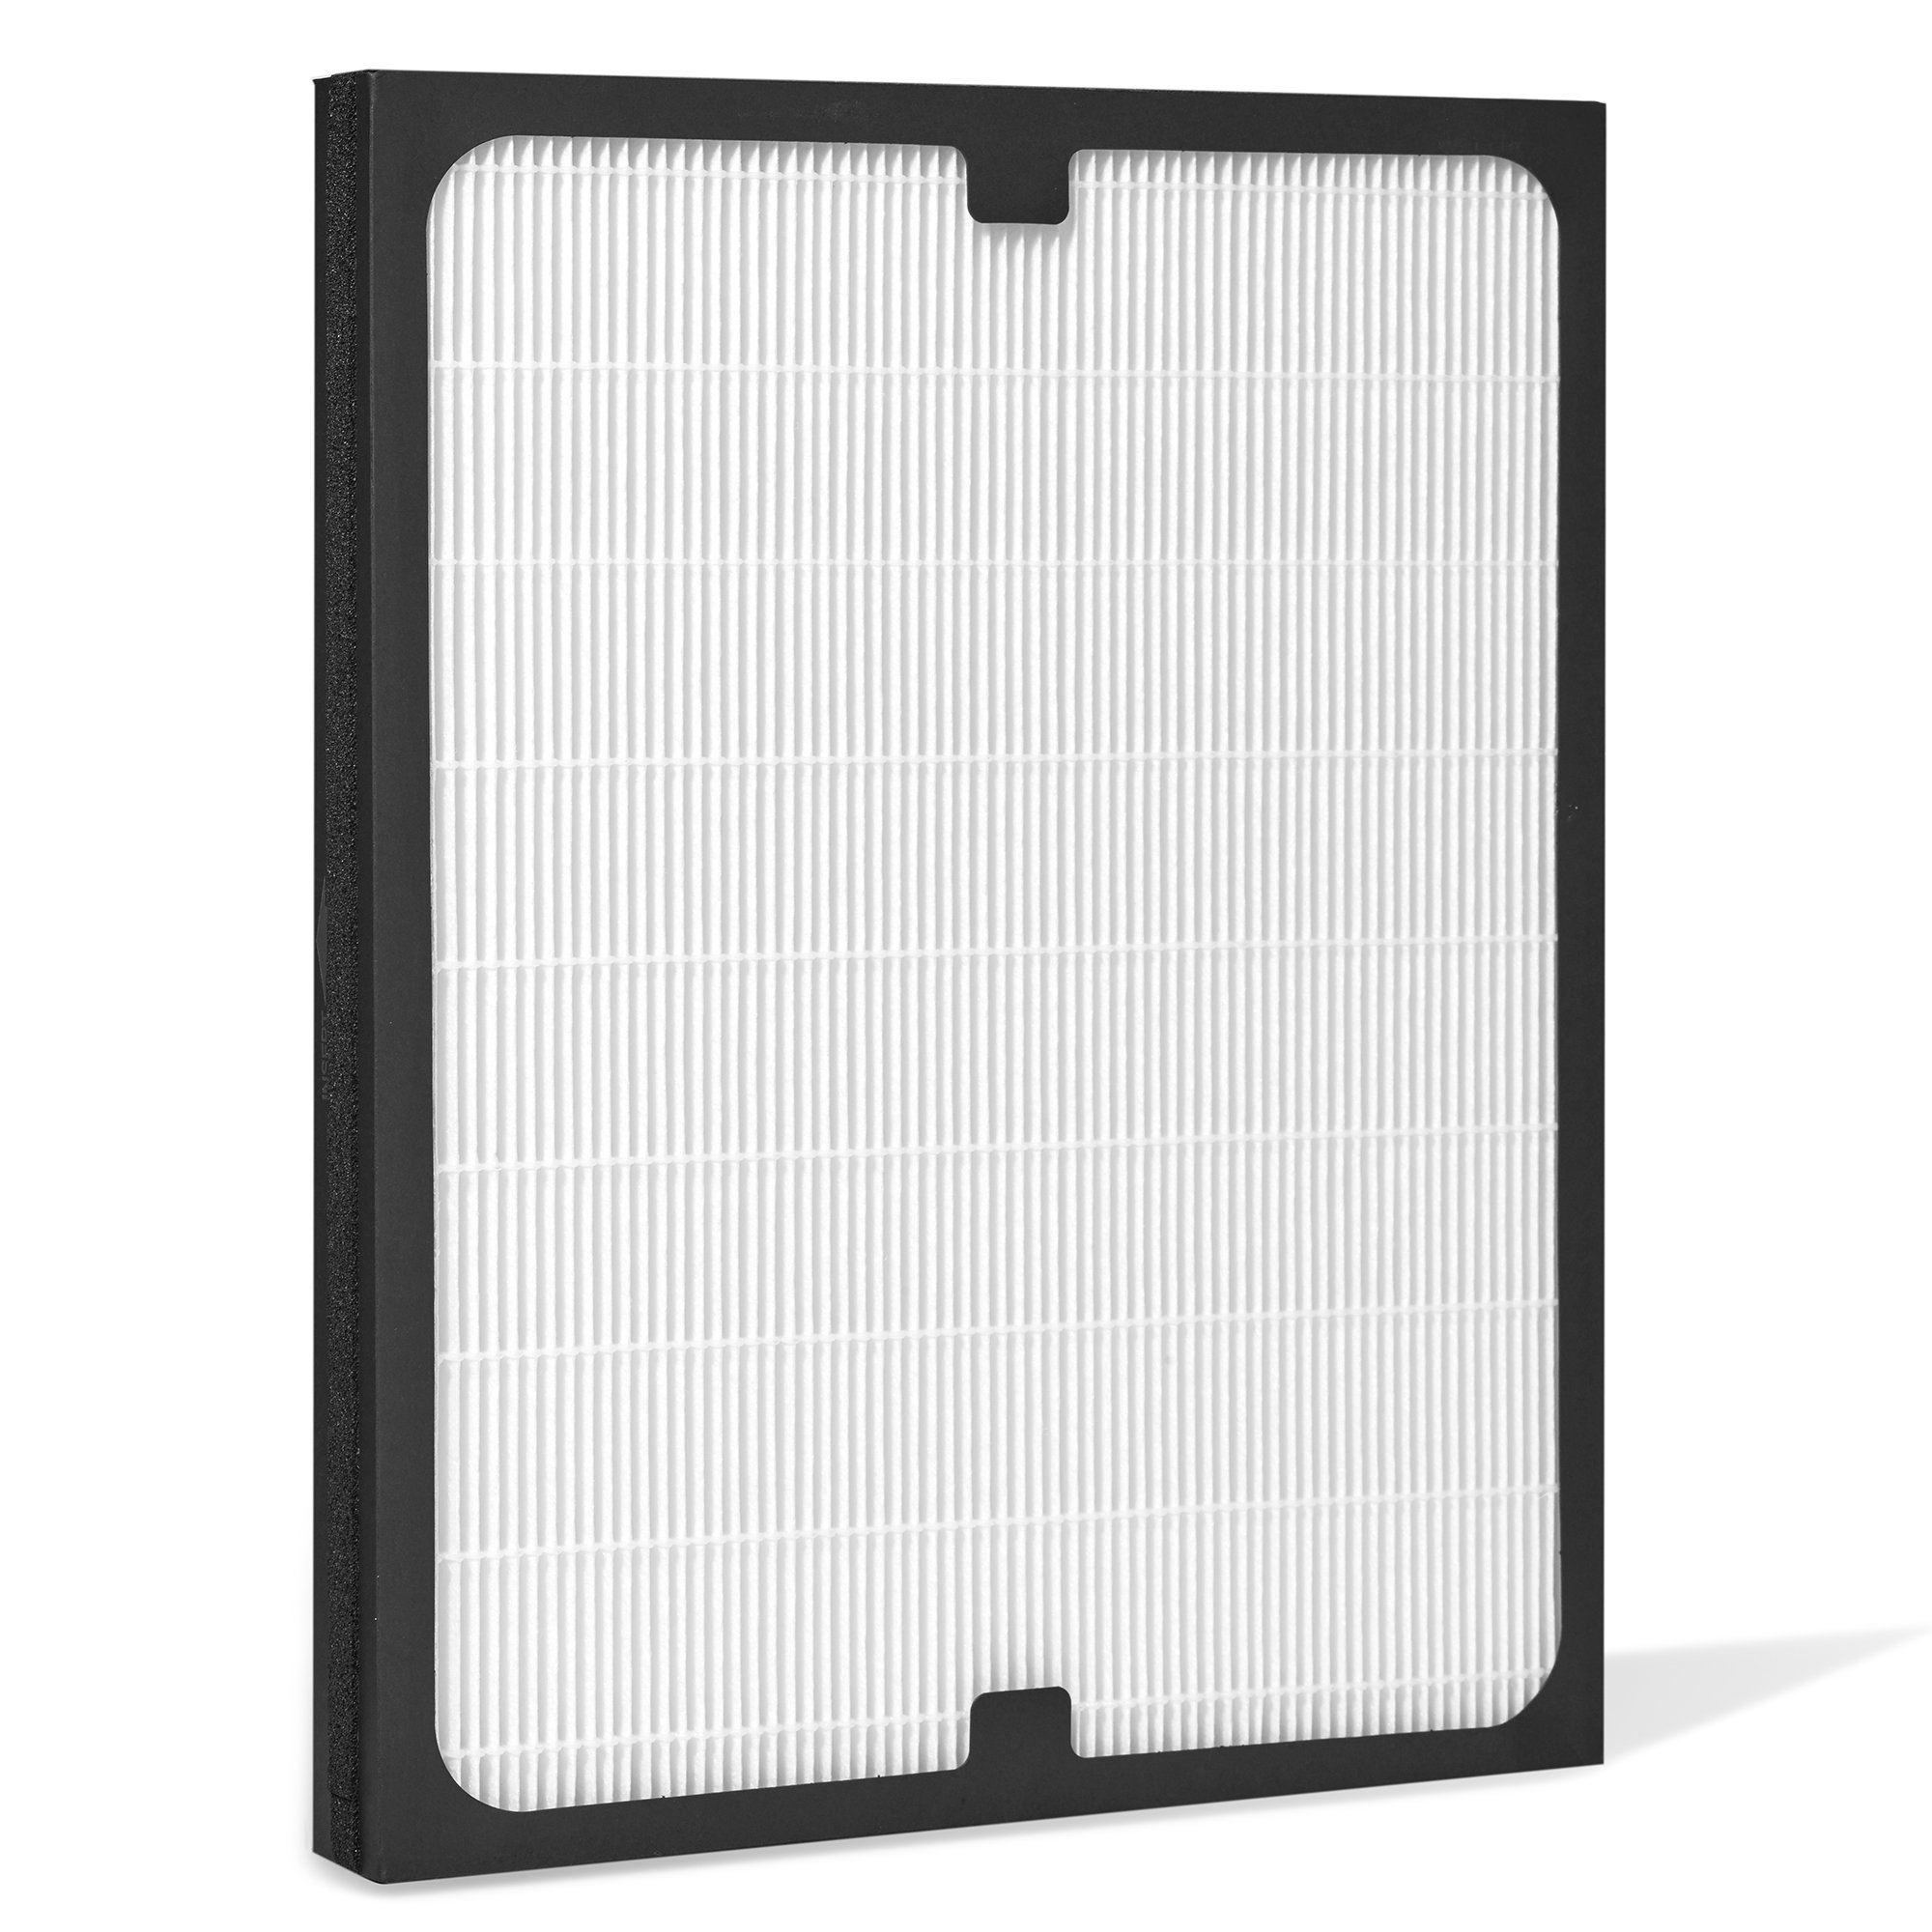 Blueair Classic Replacement Filter, 200/300 Series Genuine Particle Filter, Pollen, Dust, Removal; Classic 203, 270E, 303, 201, 250E, 215B, 210B, 205